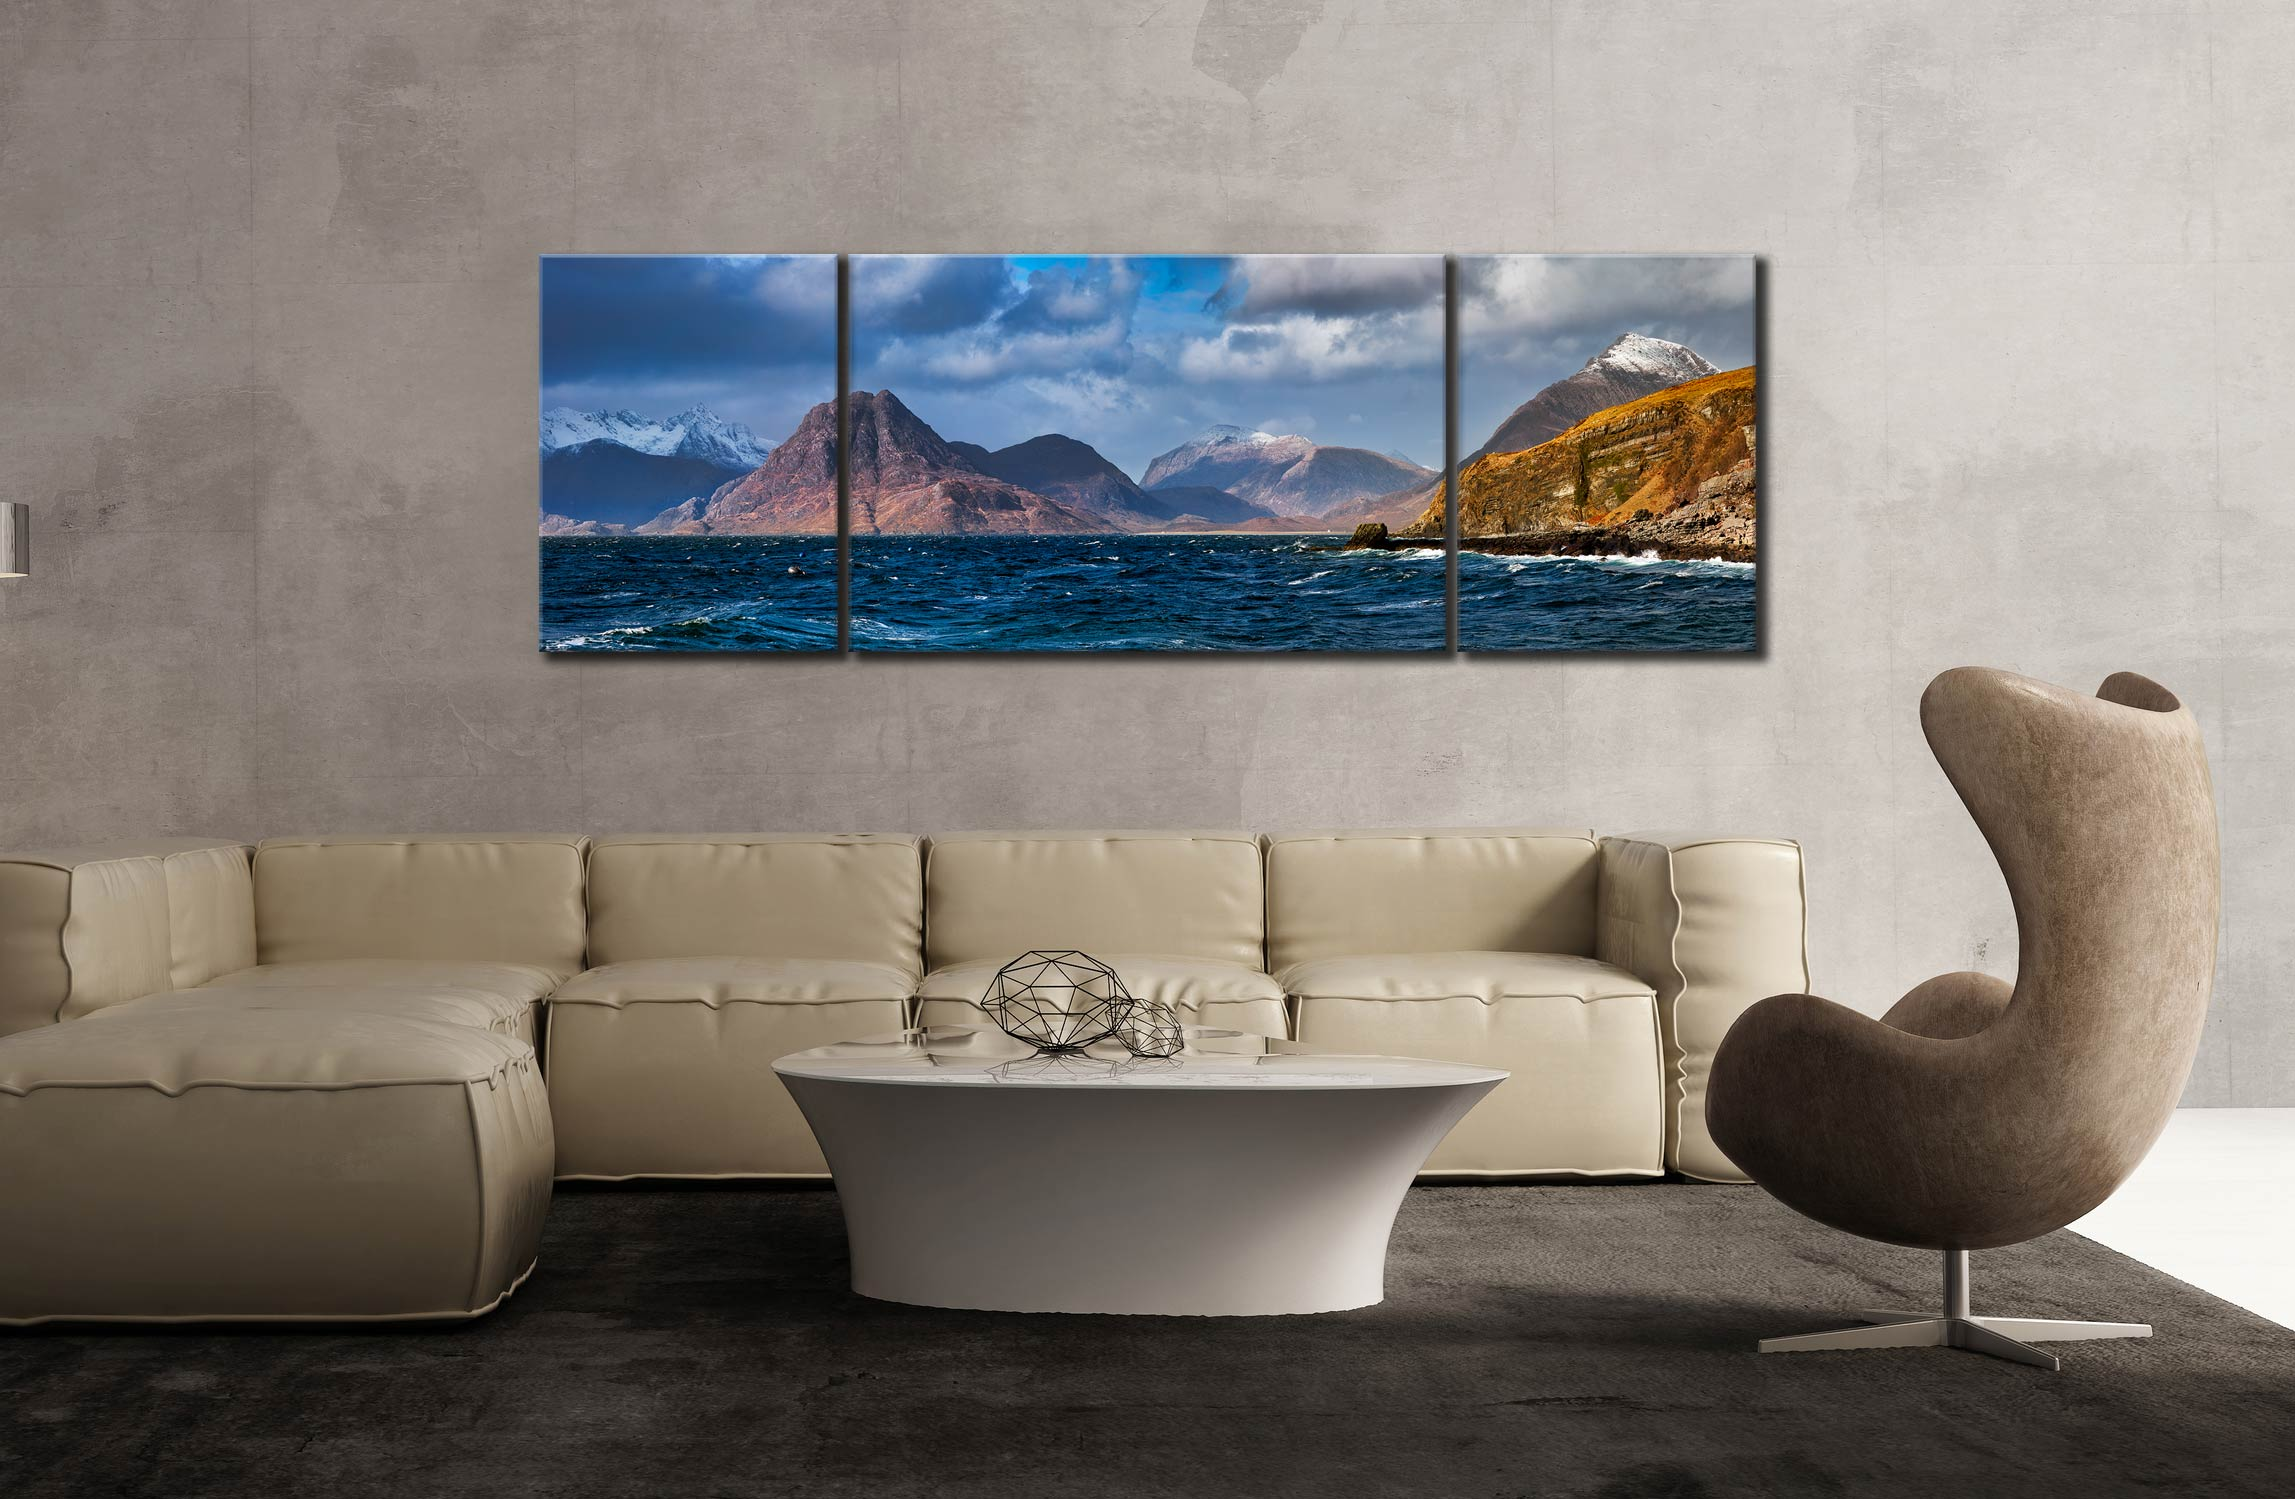 Cuillins From Elgol - 3 Panel Wide Mid Canvas on Wall